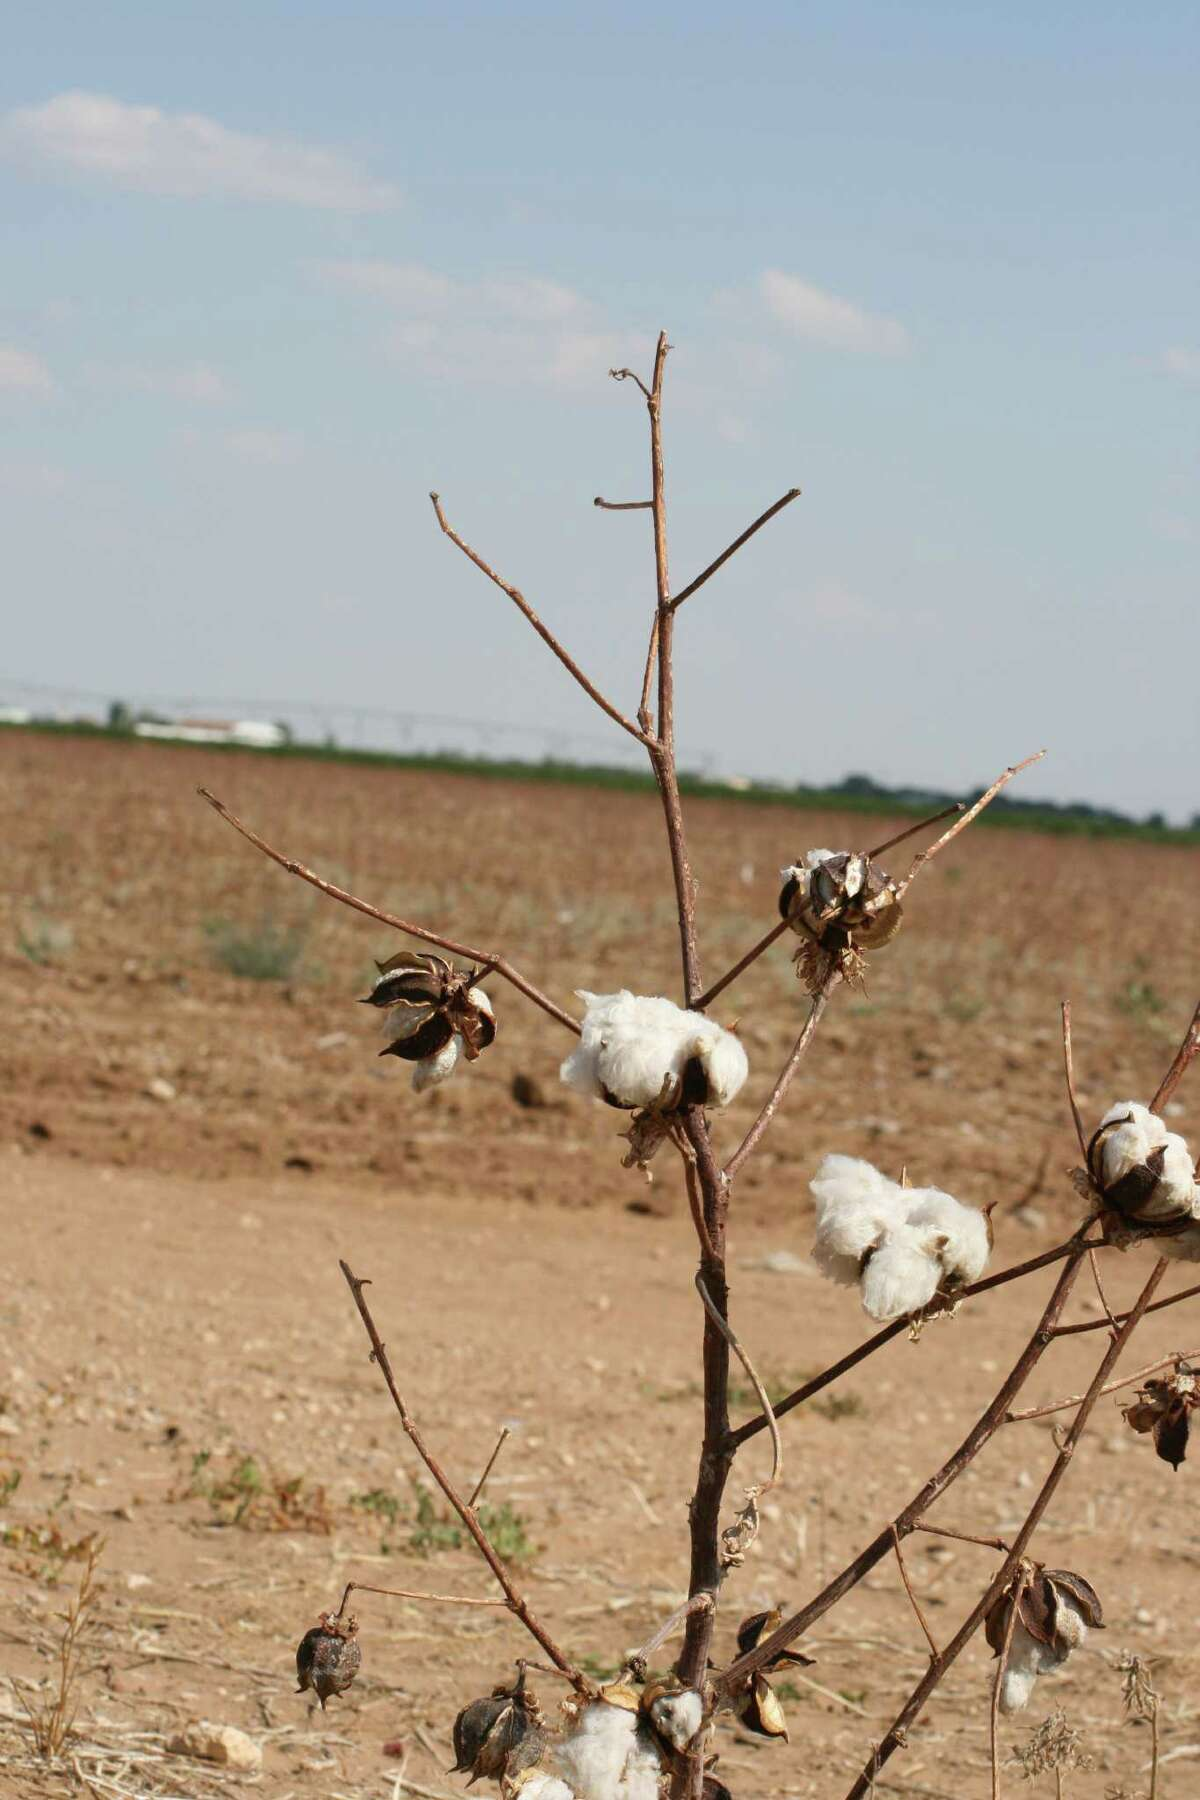 Bobby Nedbalek explains that cotton crop residue in his fields near Sinton is still intact because the ground is too dry to decompose it. Nedbalek lost more than 90 percent of his cotton last year.